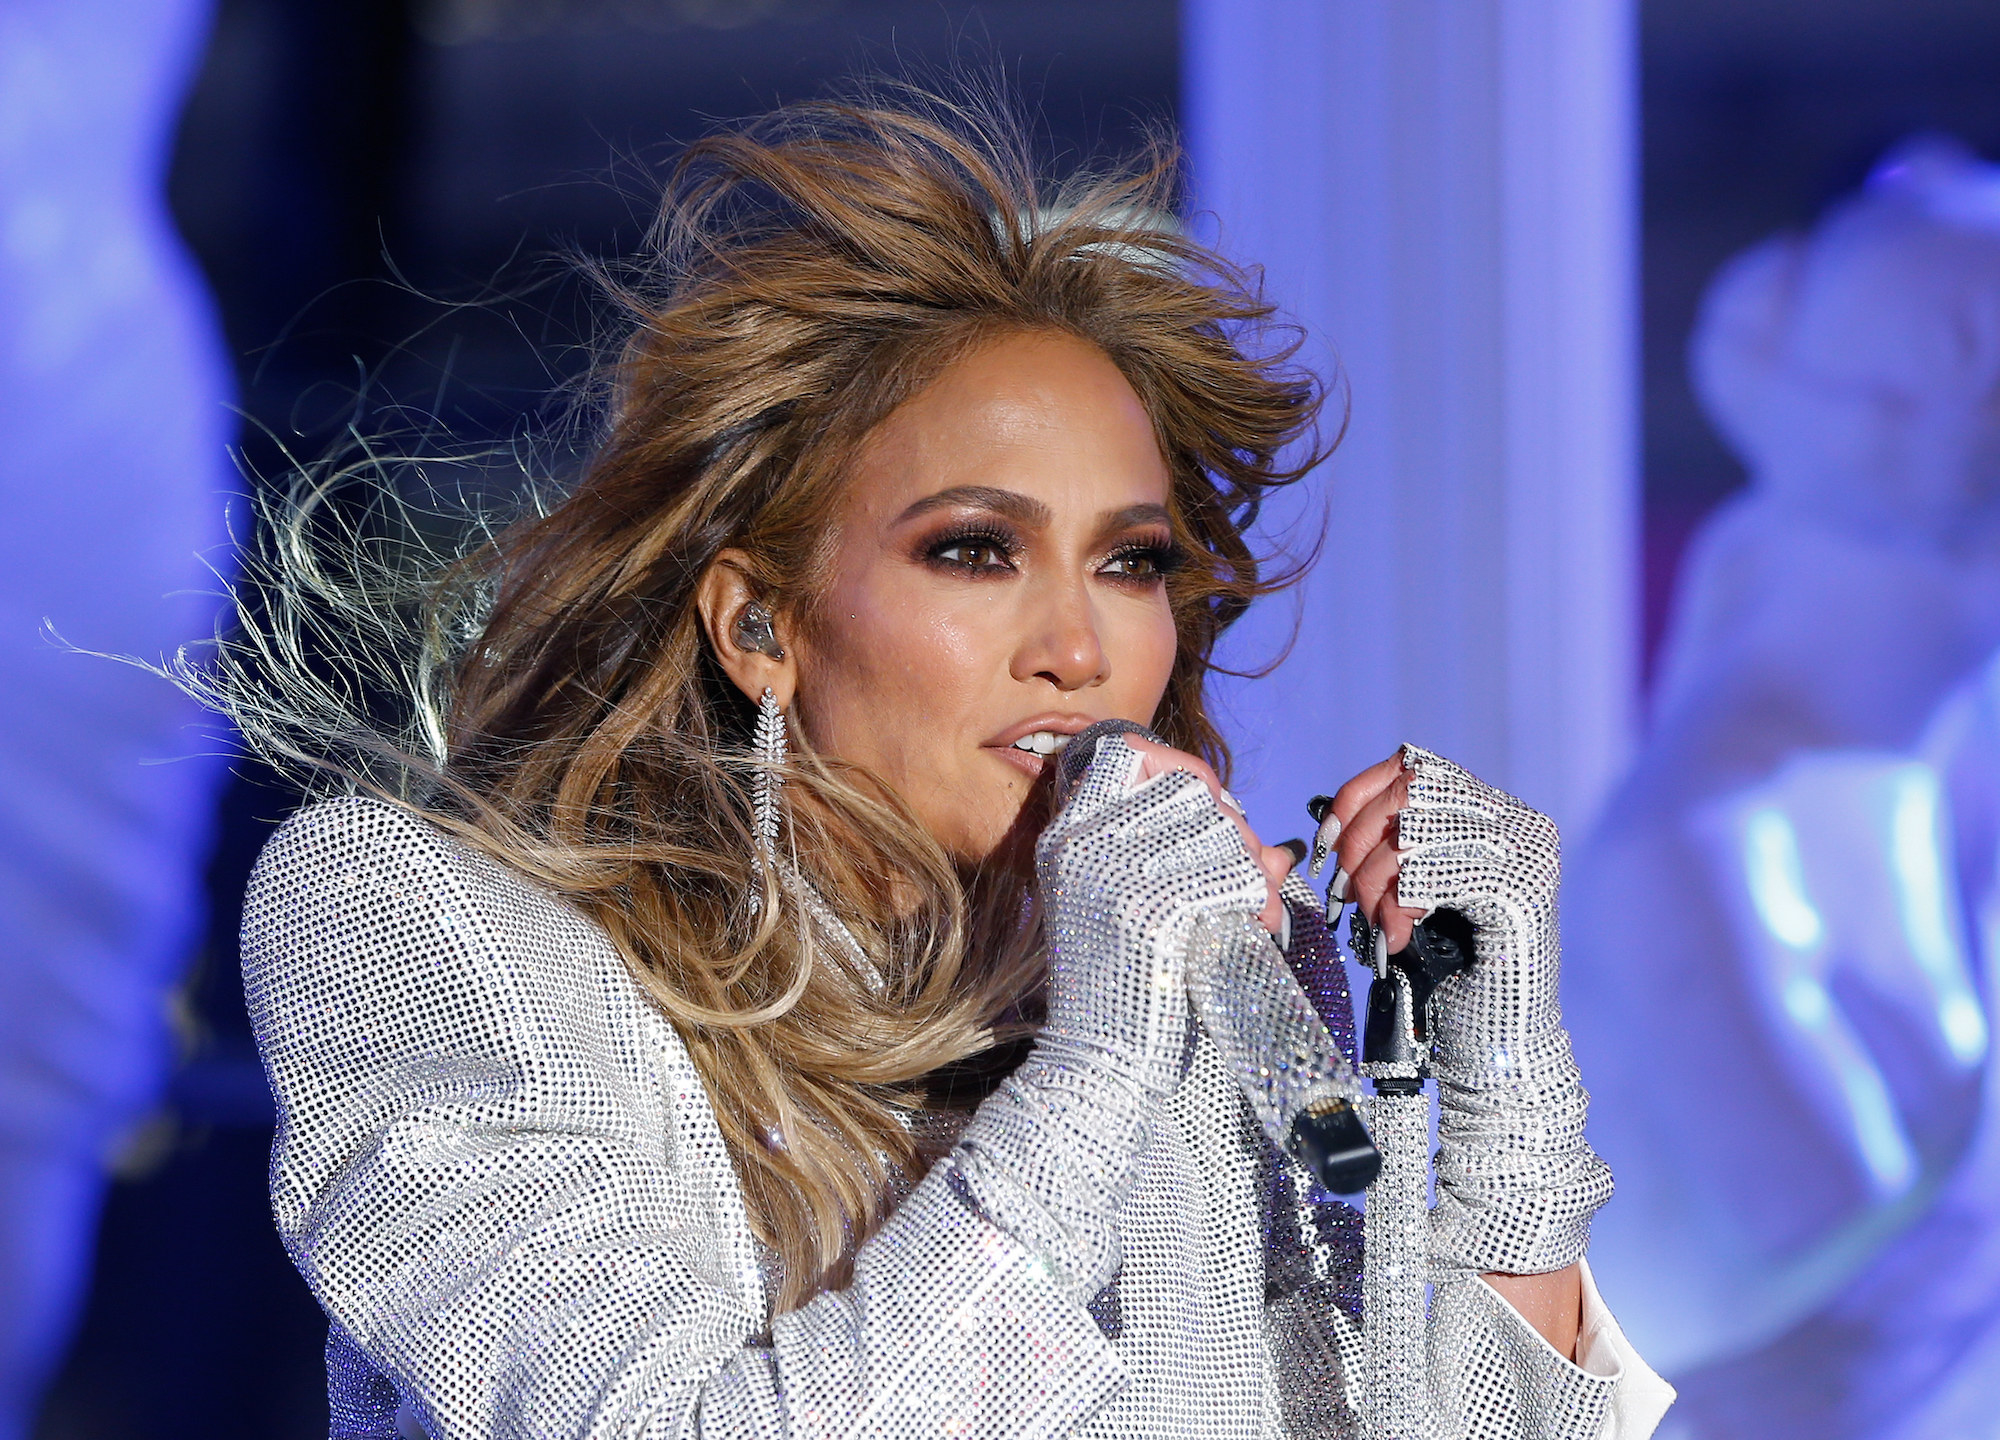 J Lo performing with glowing skin.